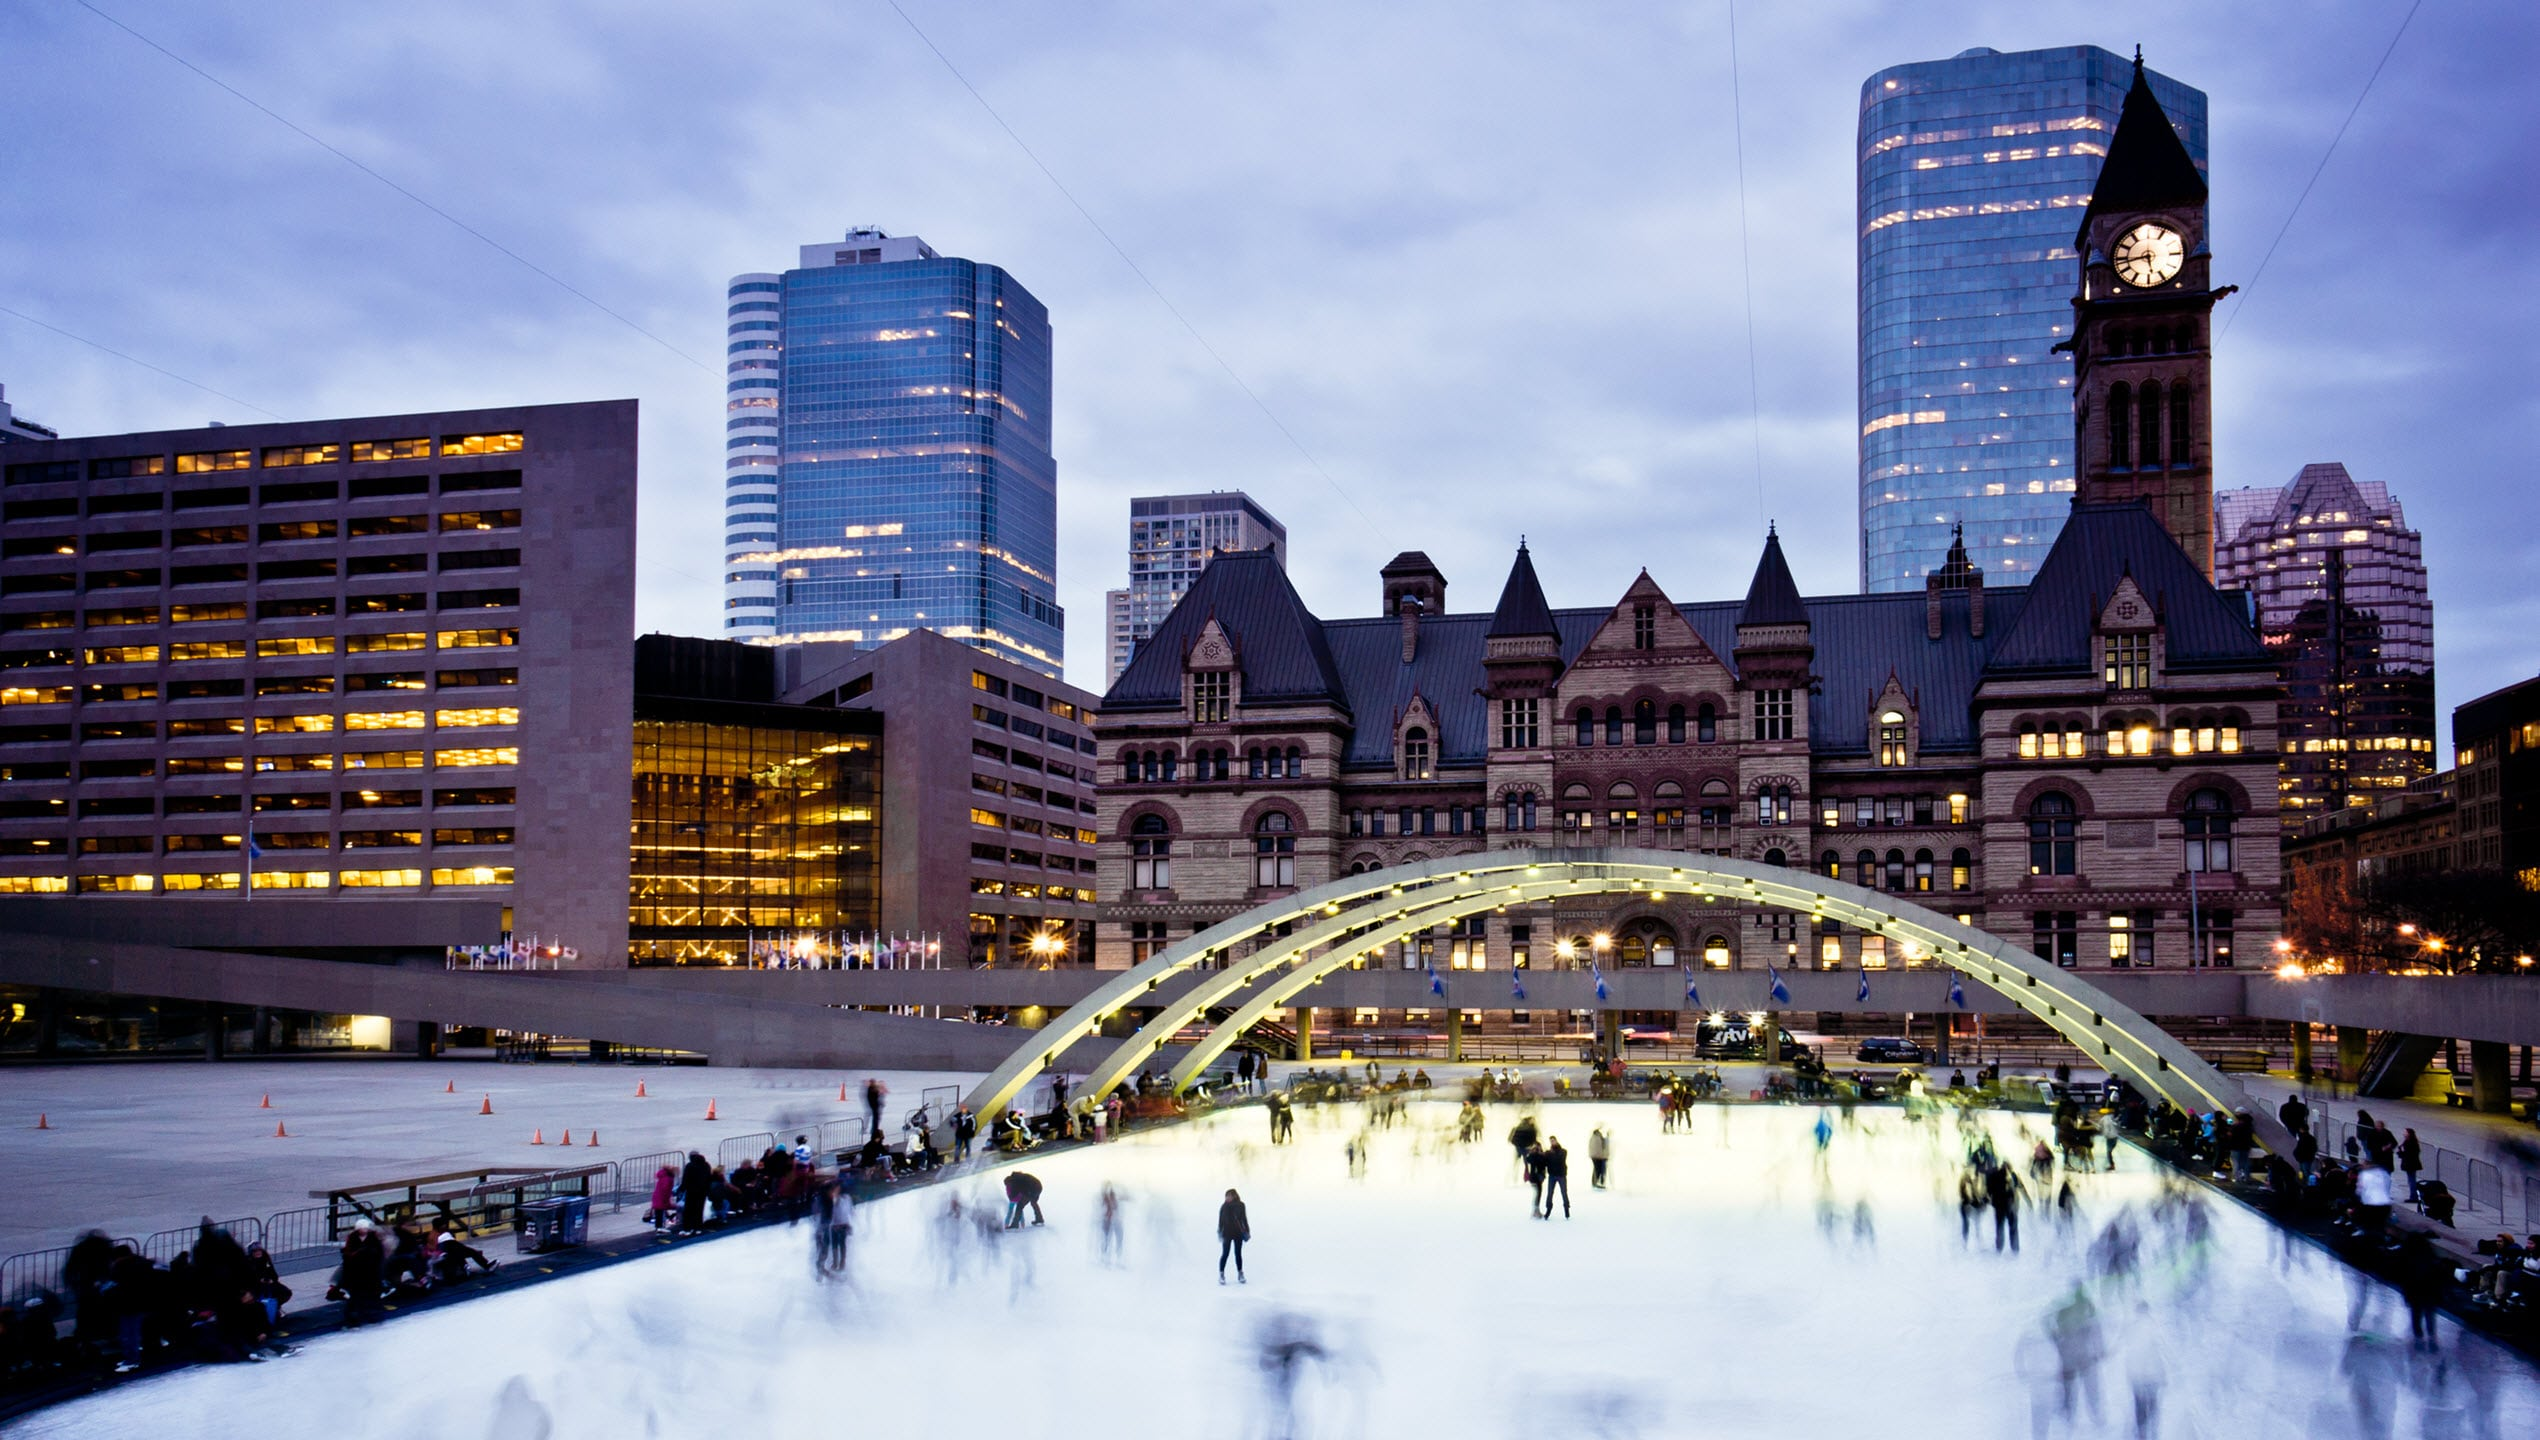 Nathan Phillips Square Skating Rink